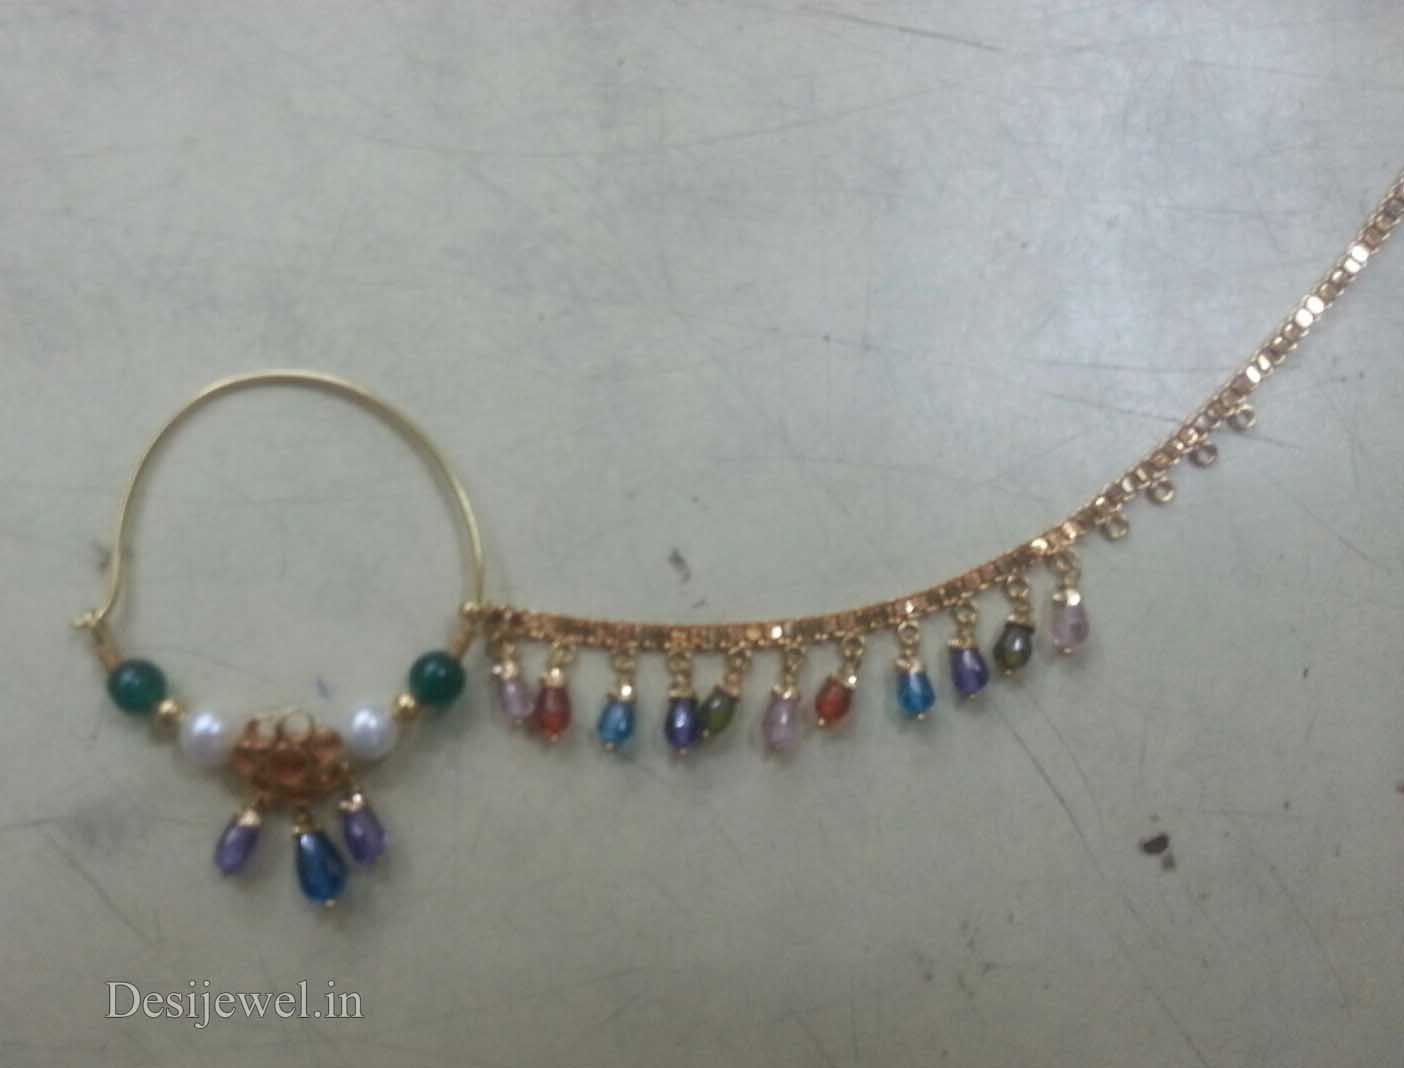 Rajasthani Gold Desi Nath Jewellery  in Jodhpur with weight of 3-9 GM